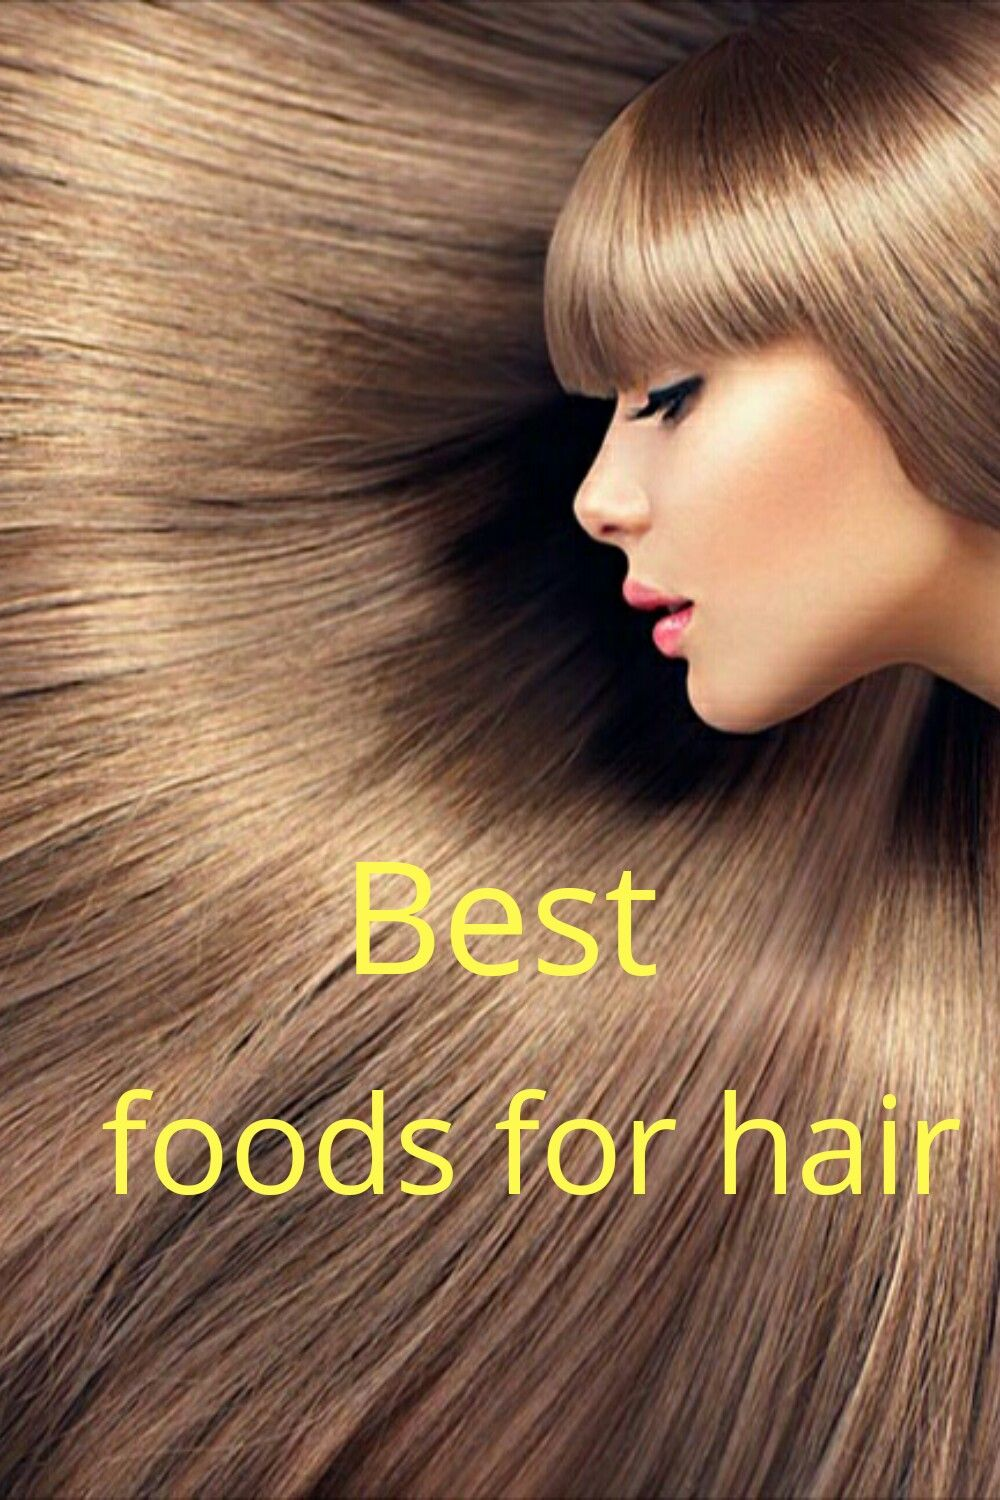 Best foods for hair to get super healthy hair.protien